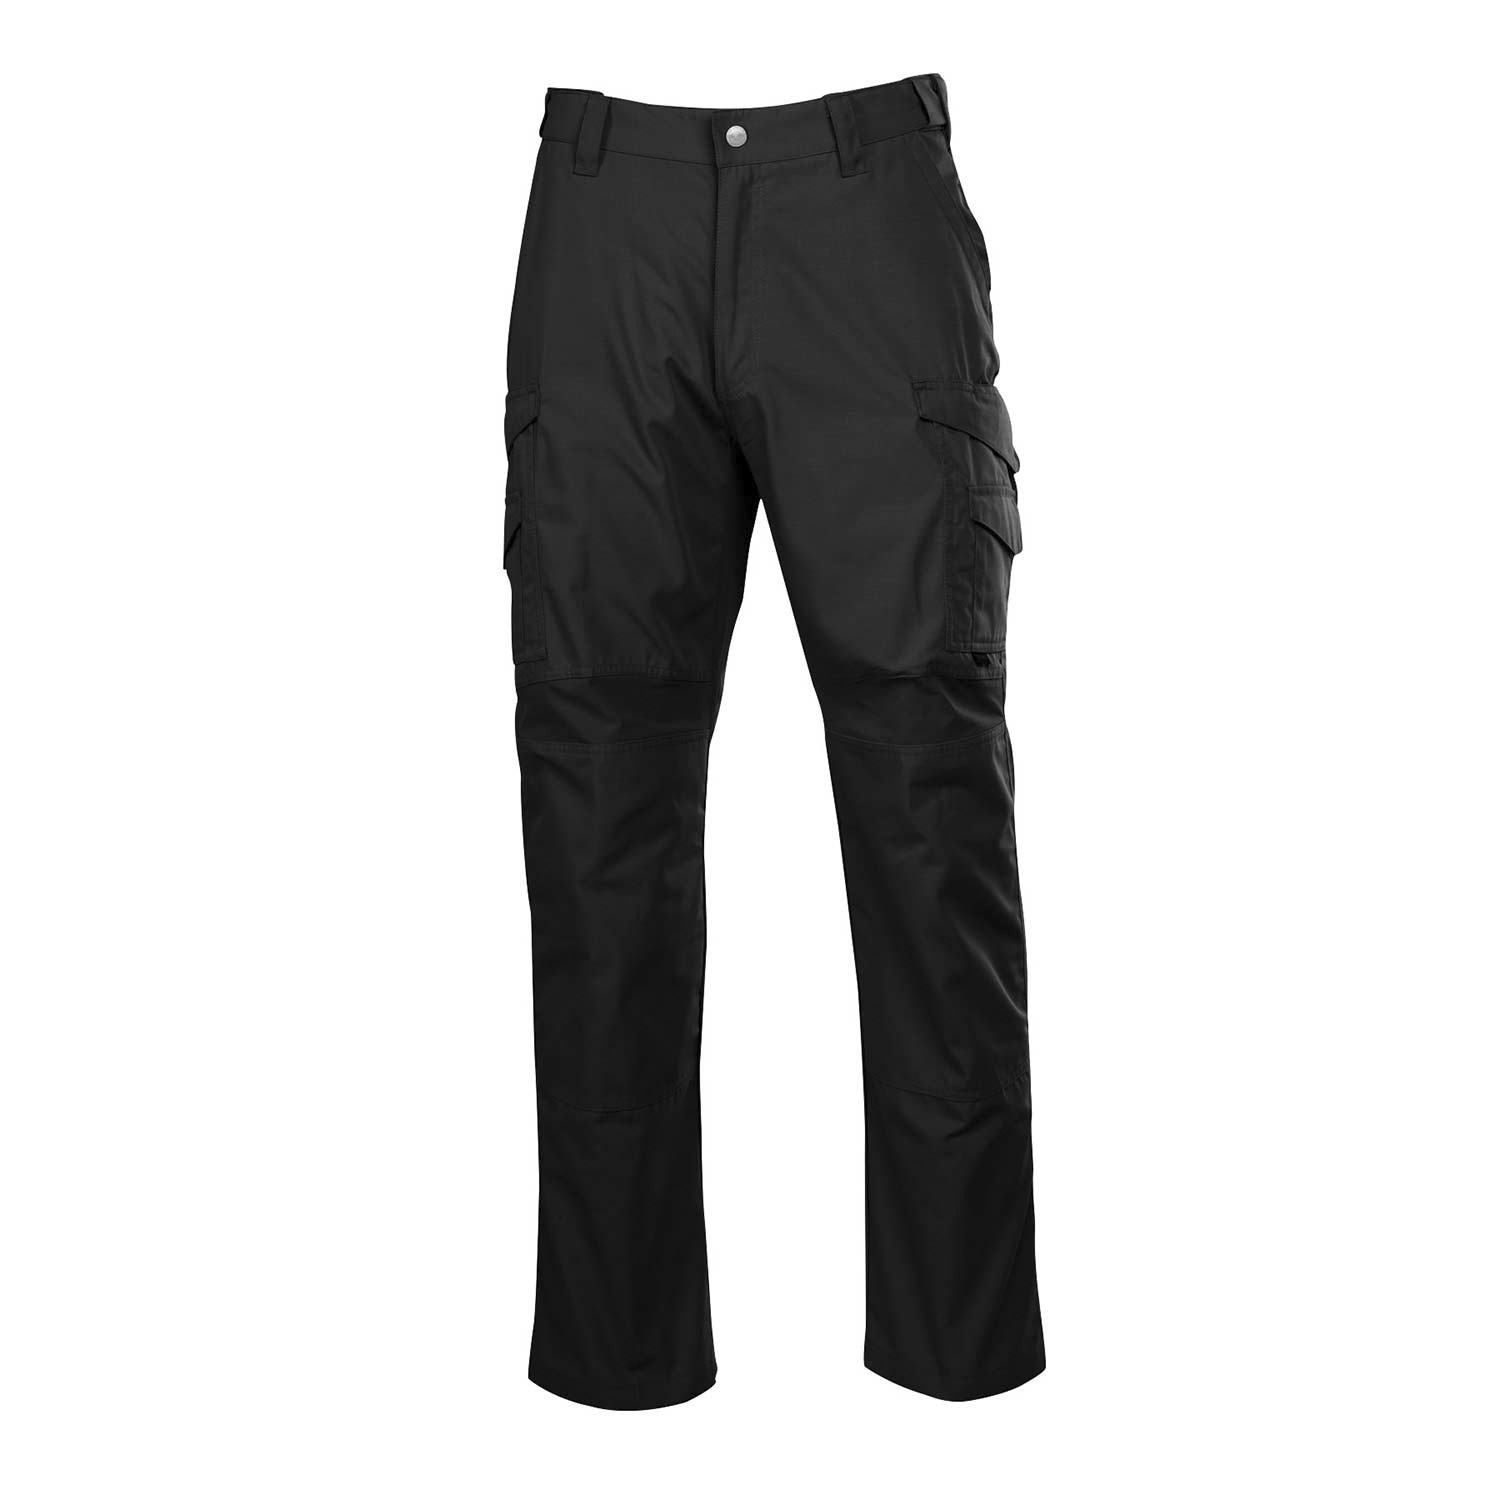 TRU-SPEC WOMEN'S 24-7 PRO FLEX PANTS